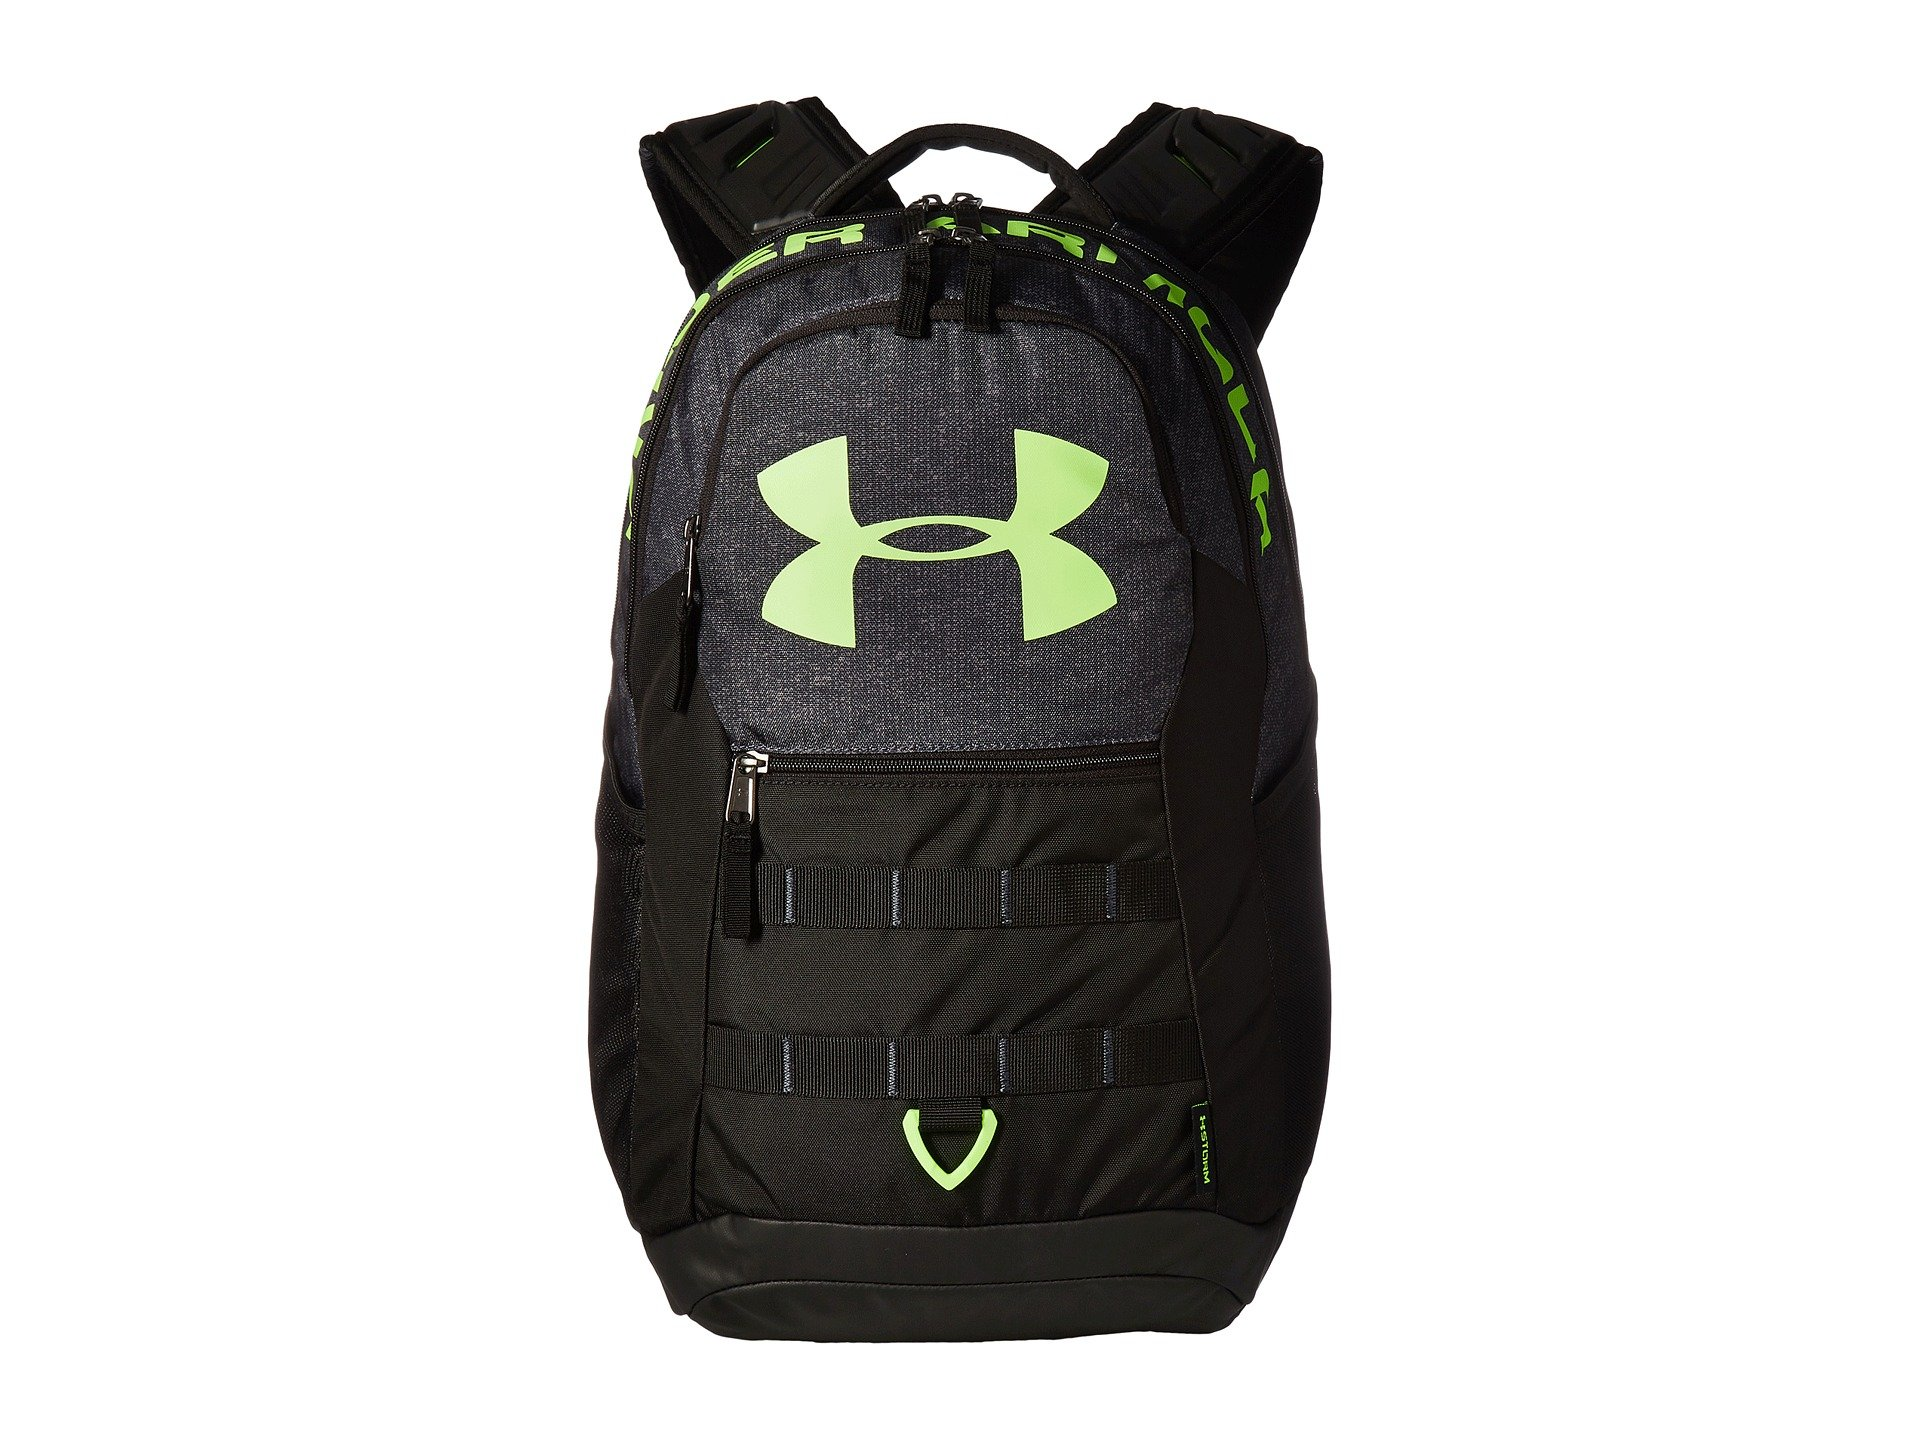 385fea9a5235 Under Armour Ua Big Logo 5.0 In Stealth Gray Black Quirky Lime ...